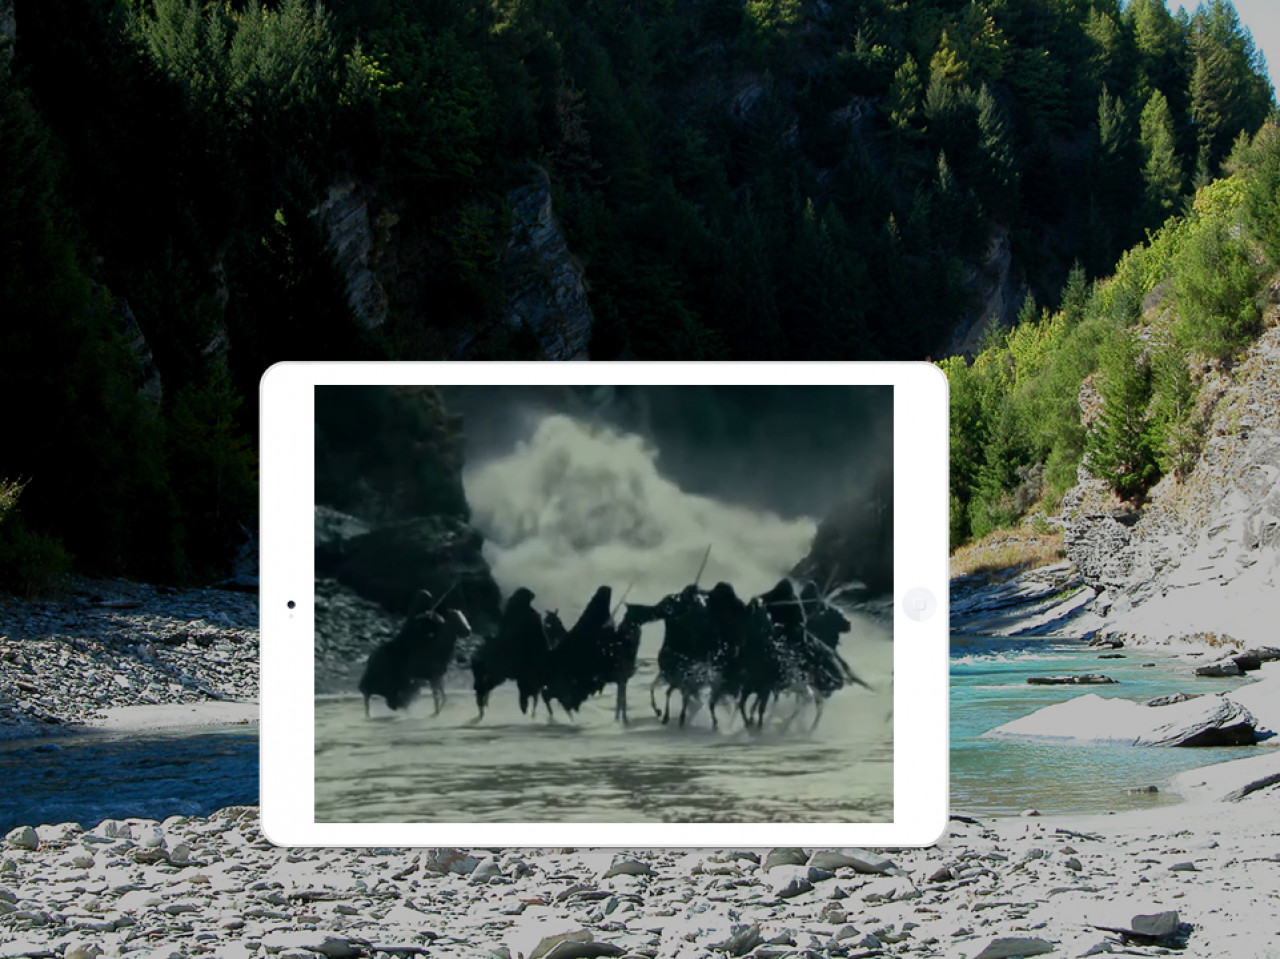 The Nazgûl turn their horses to flee from the flood.